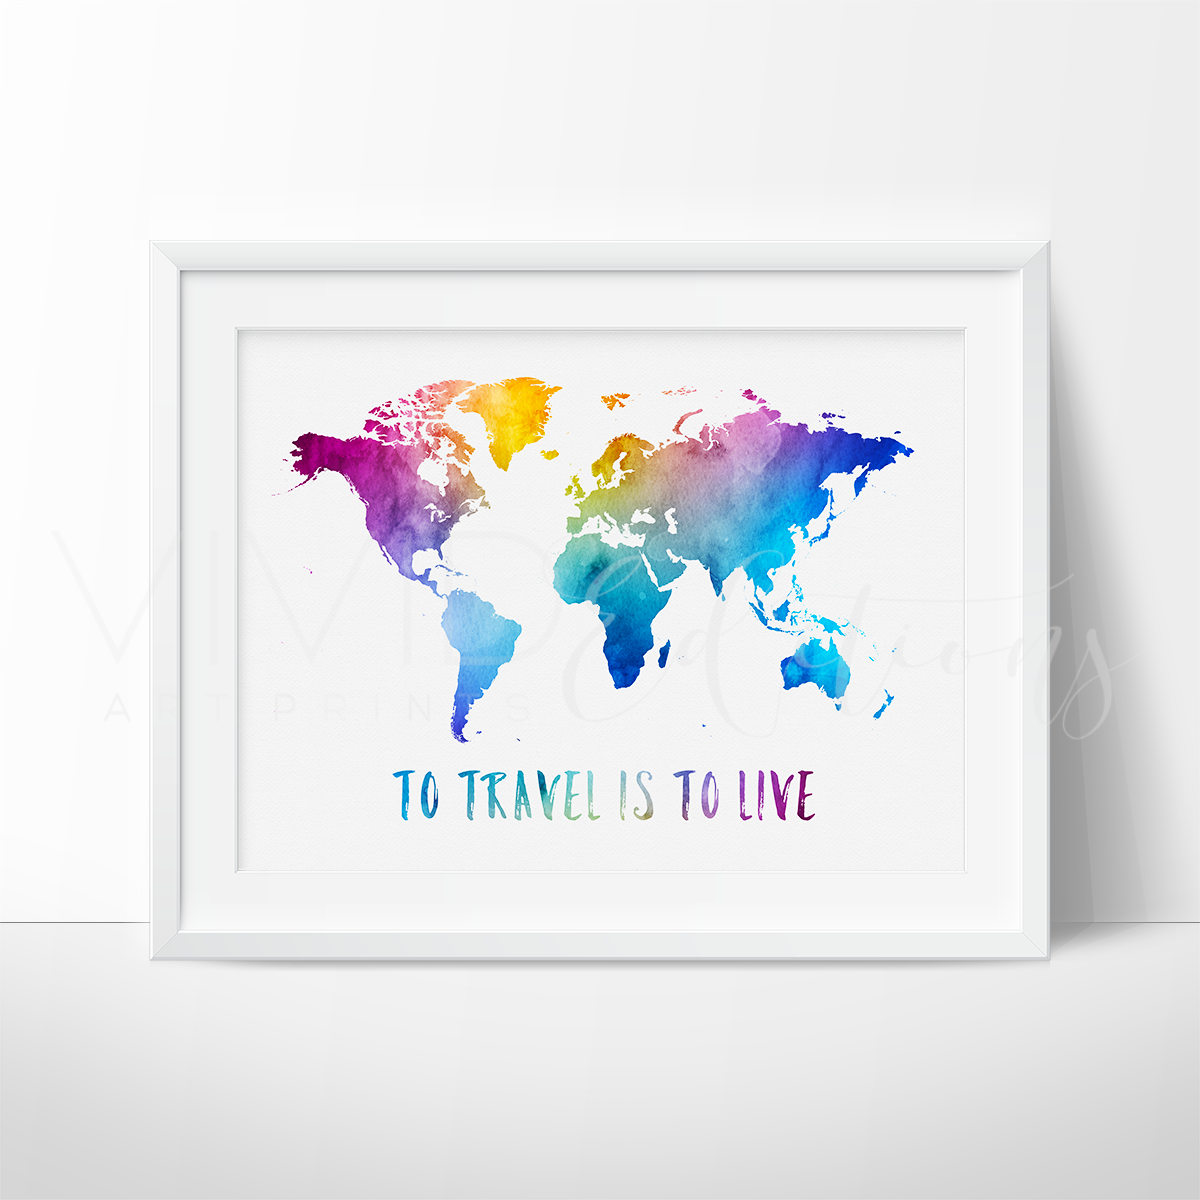 To travel is to live travel quote world map watercolor art print description specs processing shipping to travel is to live travel quote world map watercolor art print our designs make an attractive gumiabroncs Image collections